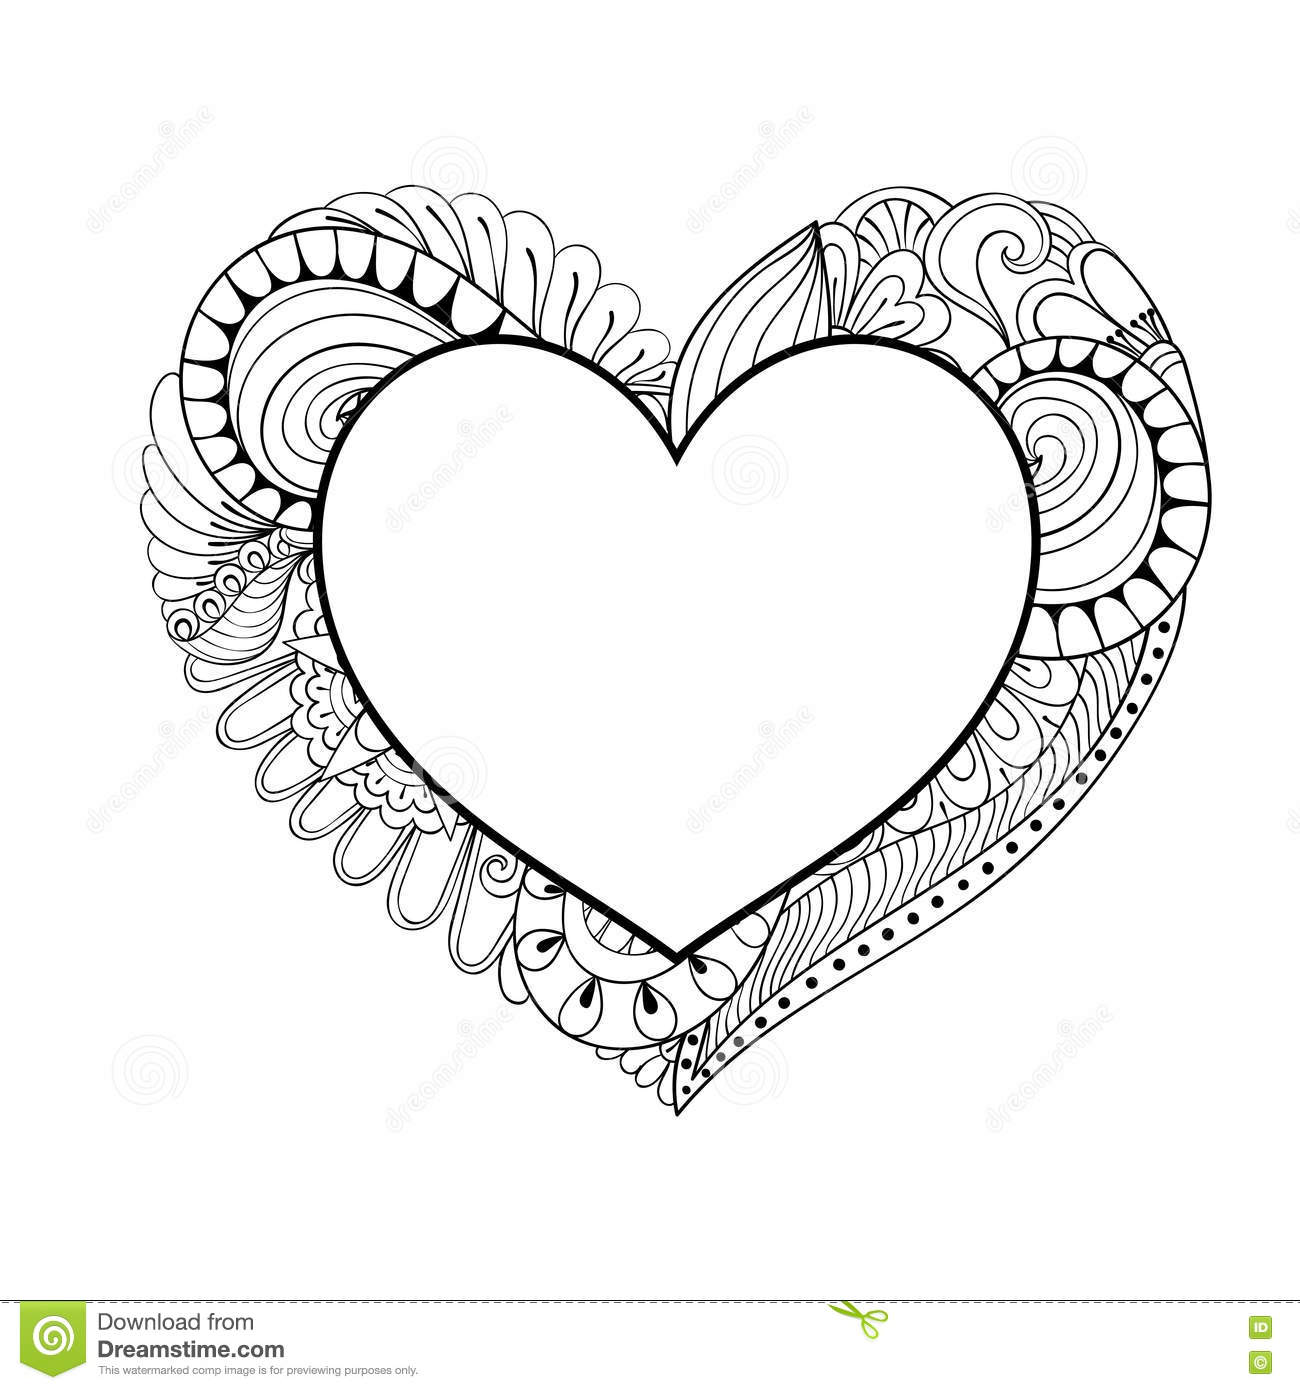 doodle heart coloring page floral doodle frame in zentangle style for 4277